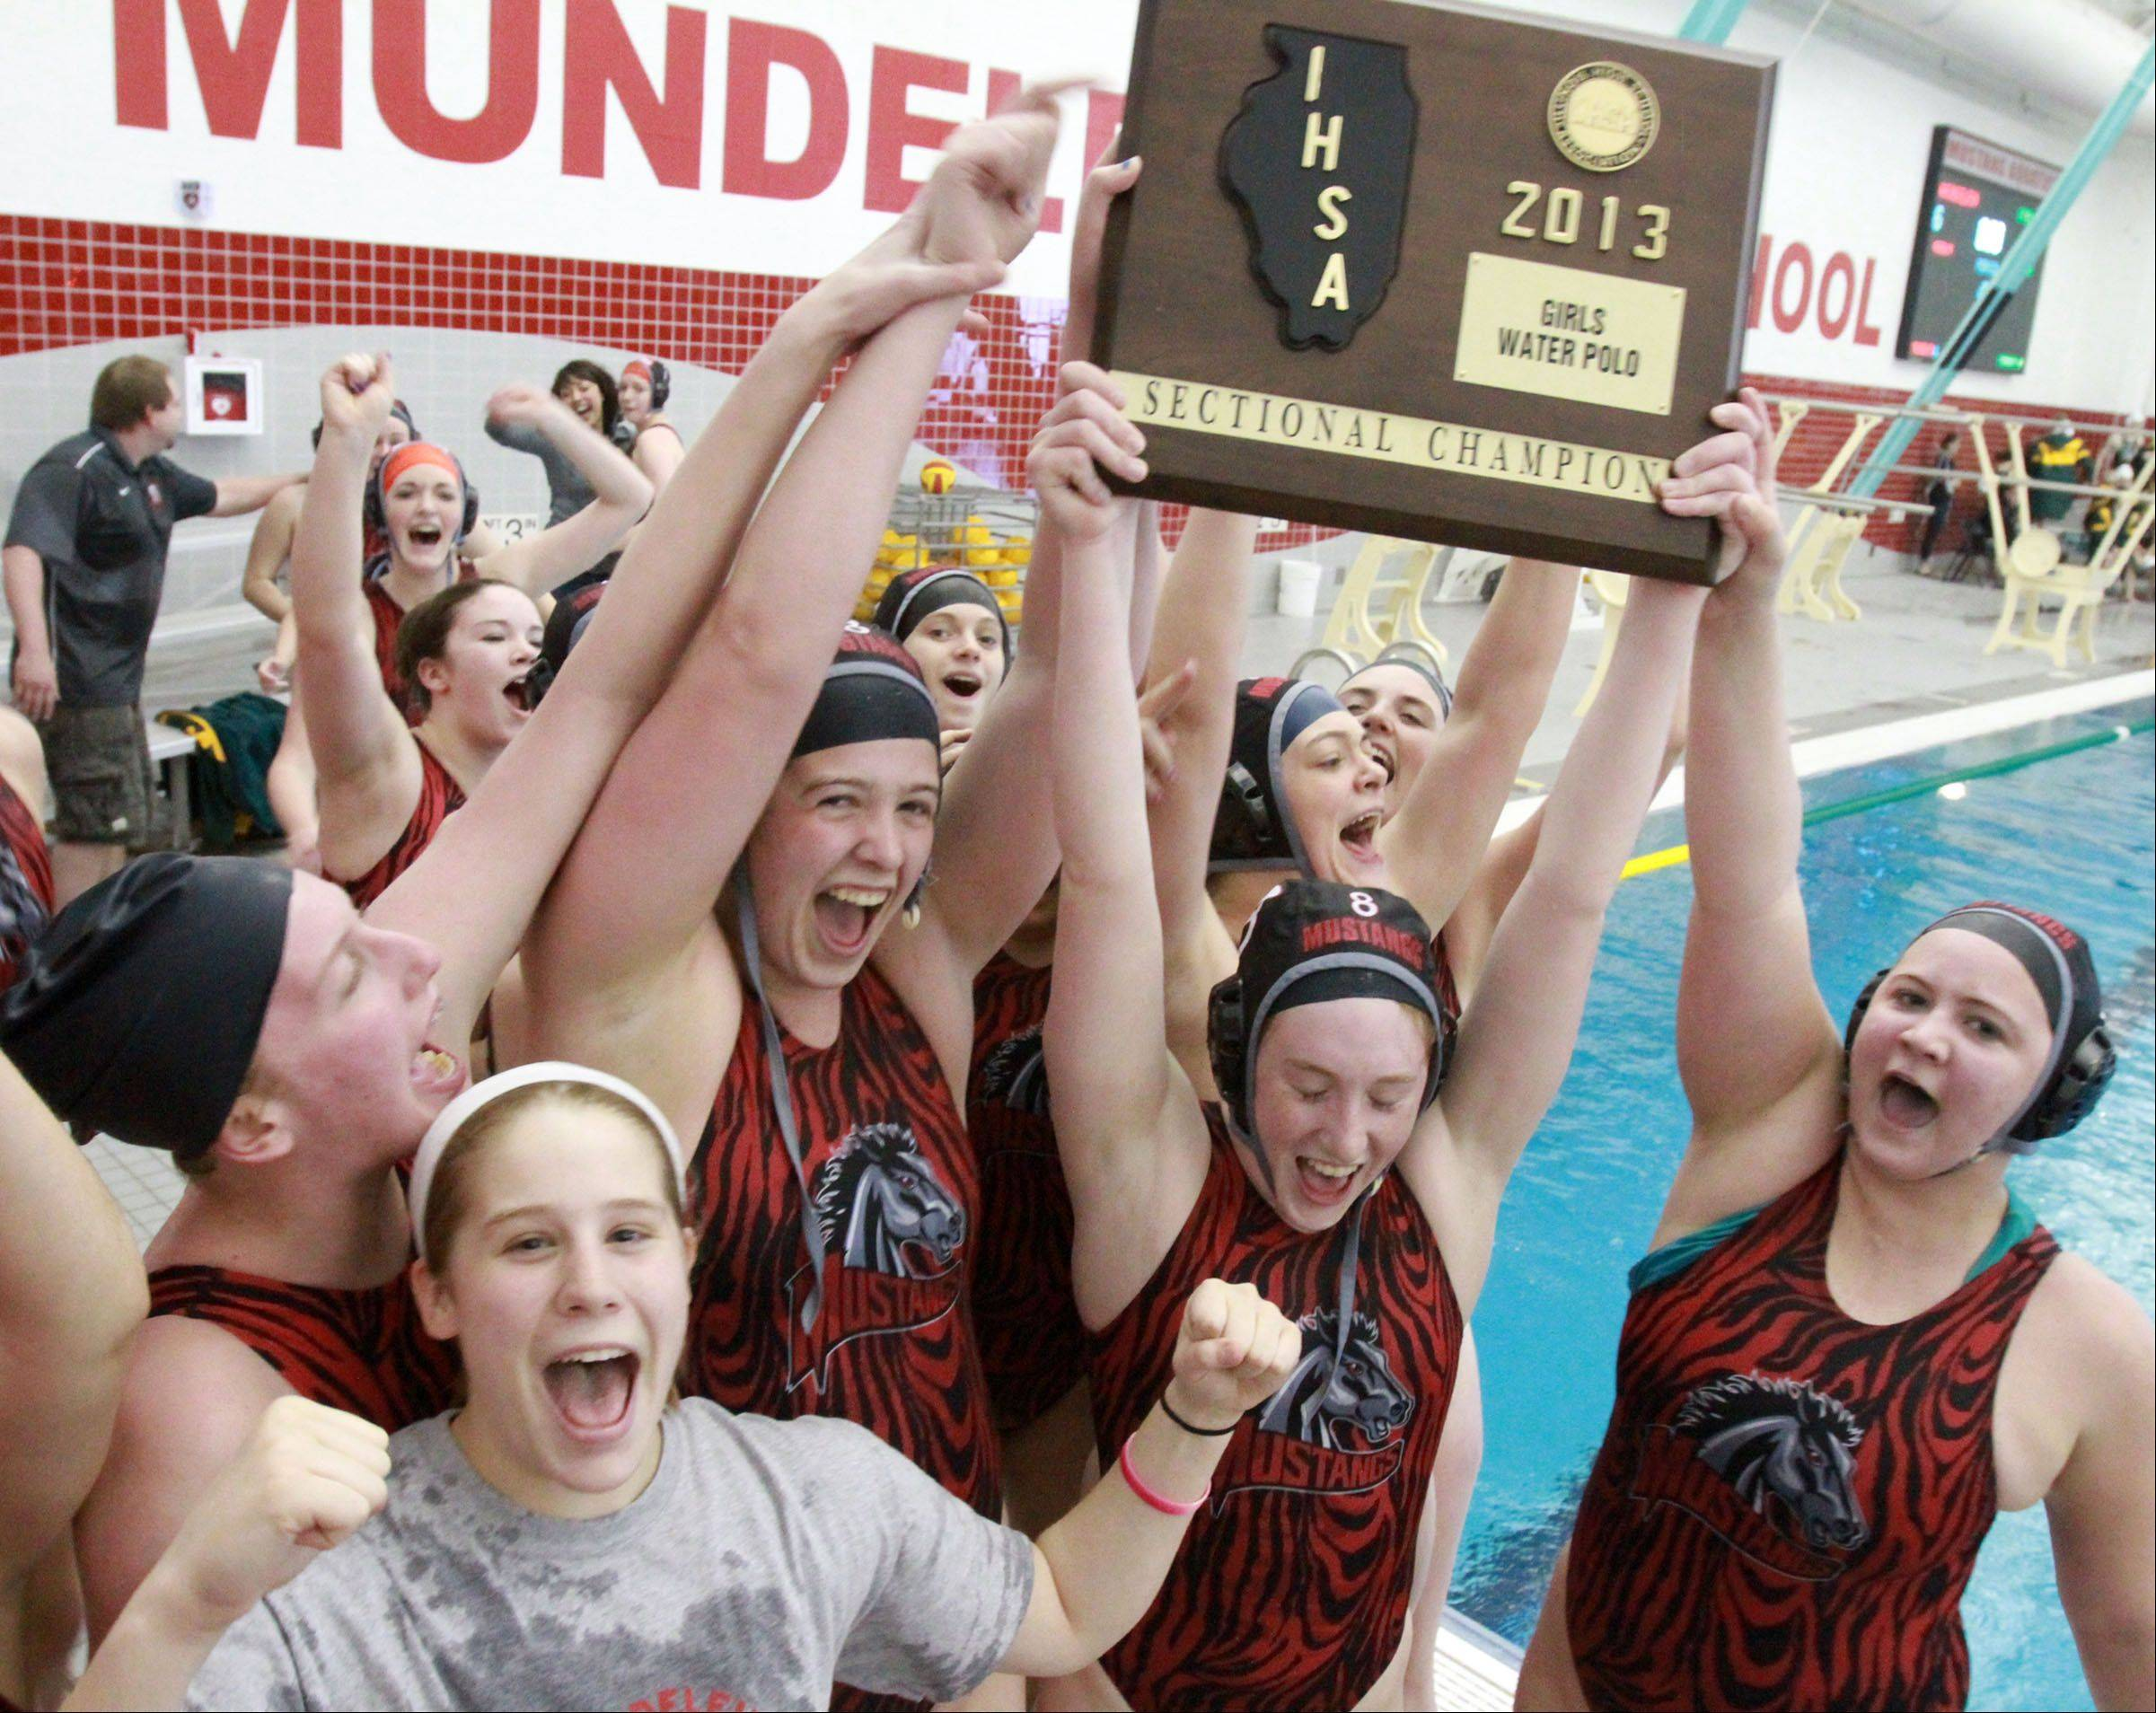 Mundelein celebrates a 6-5 victory over Stevenson in Mundelein sectional championship play Saturday.